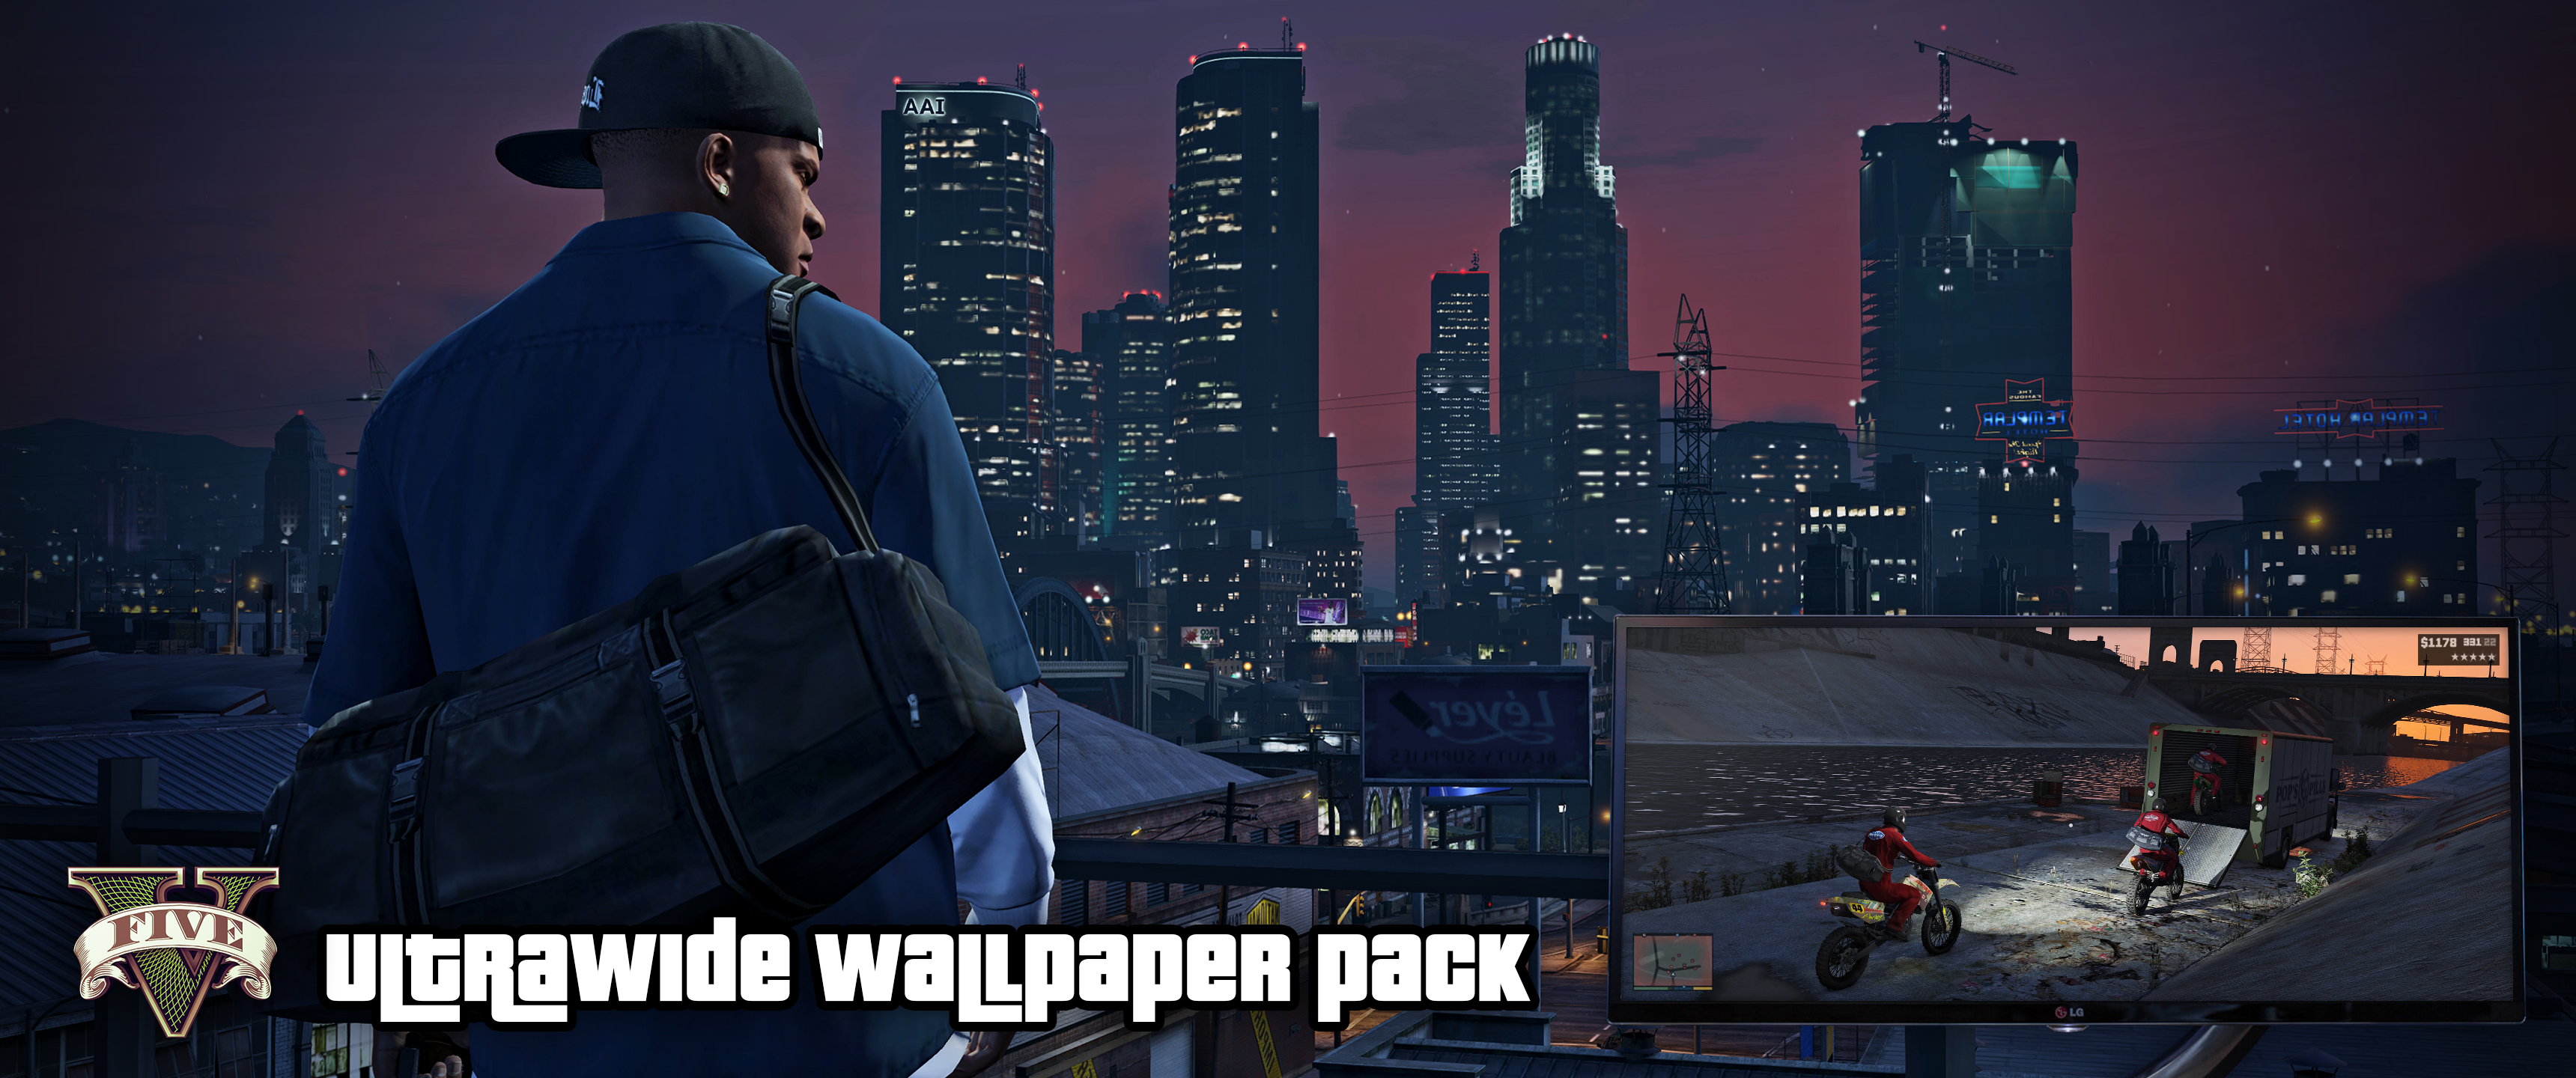 GTA V PC 3440x1440 Wallpaper pack Updated 3440x1440